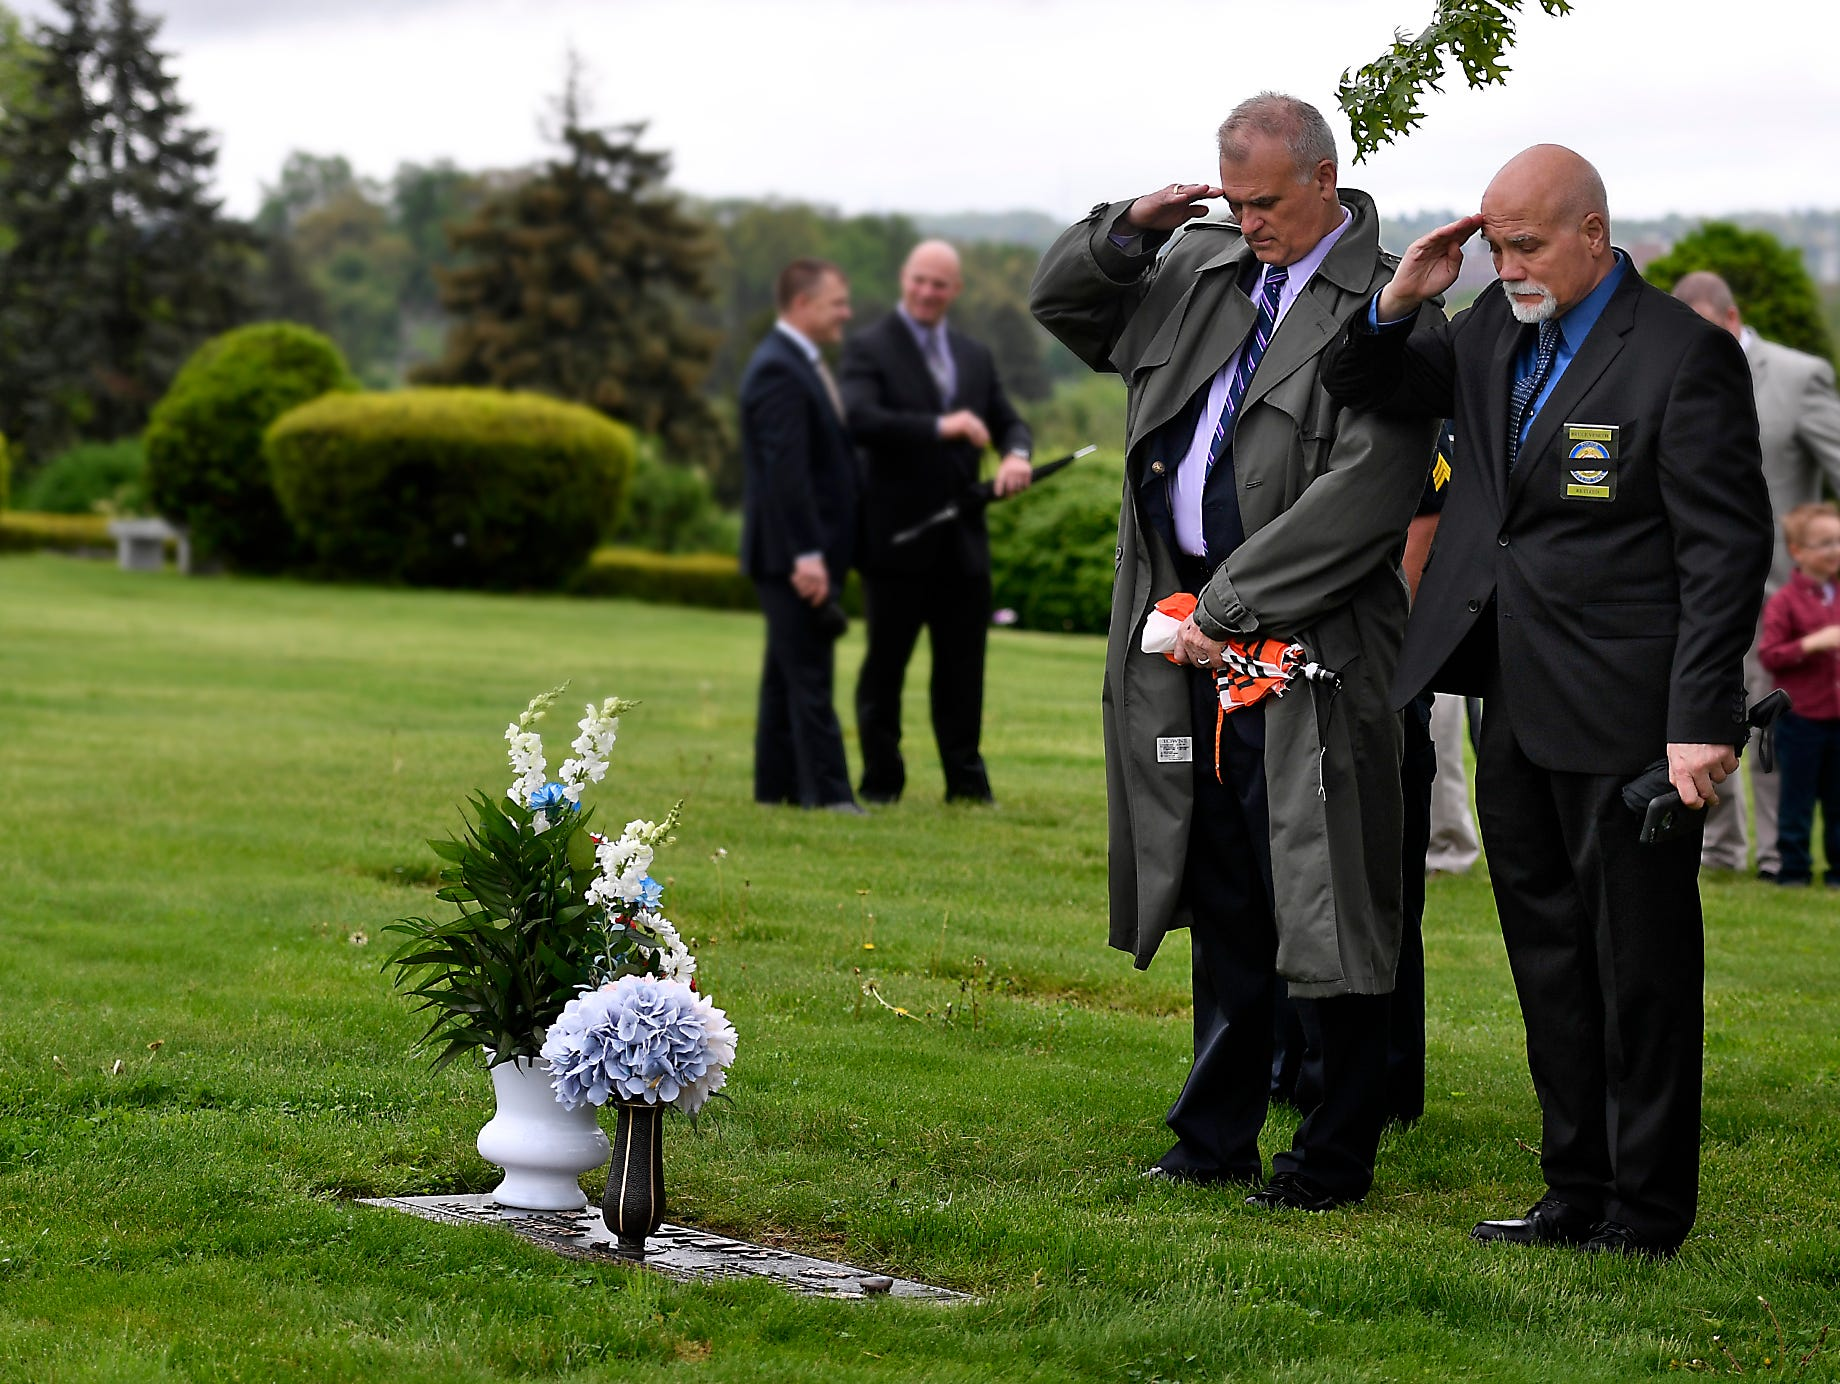 Spring Garden Township Police Chief George Swartz, left, and retired York City police officer Bruce Veseth salute the grave of Officer Alex Sable at Prospect Hill Cemetery, Sunday, May 5, 2019 during the FOP Lodge 15 memorial service.John A. Pavoncello photo